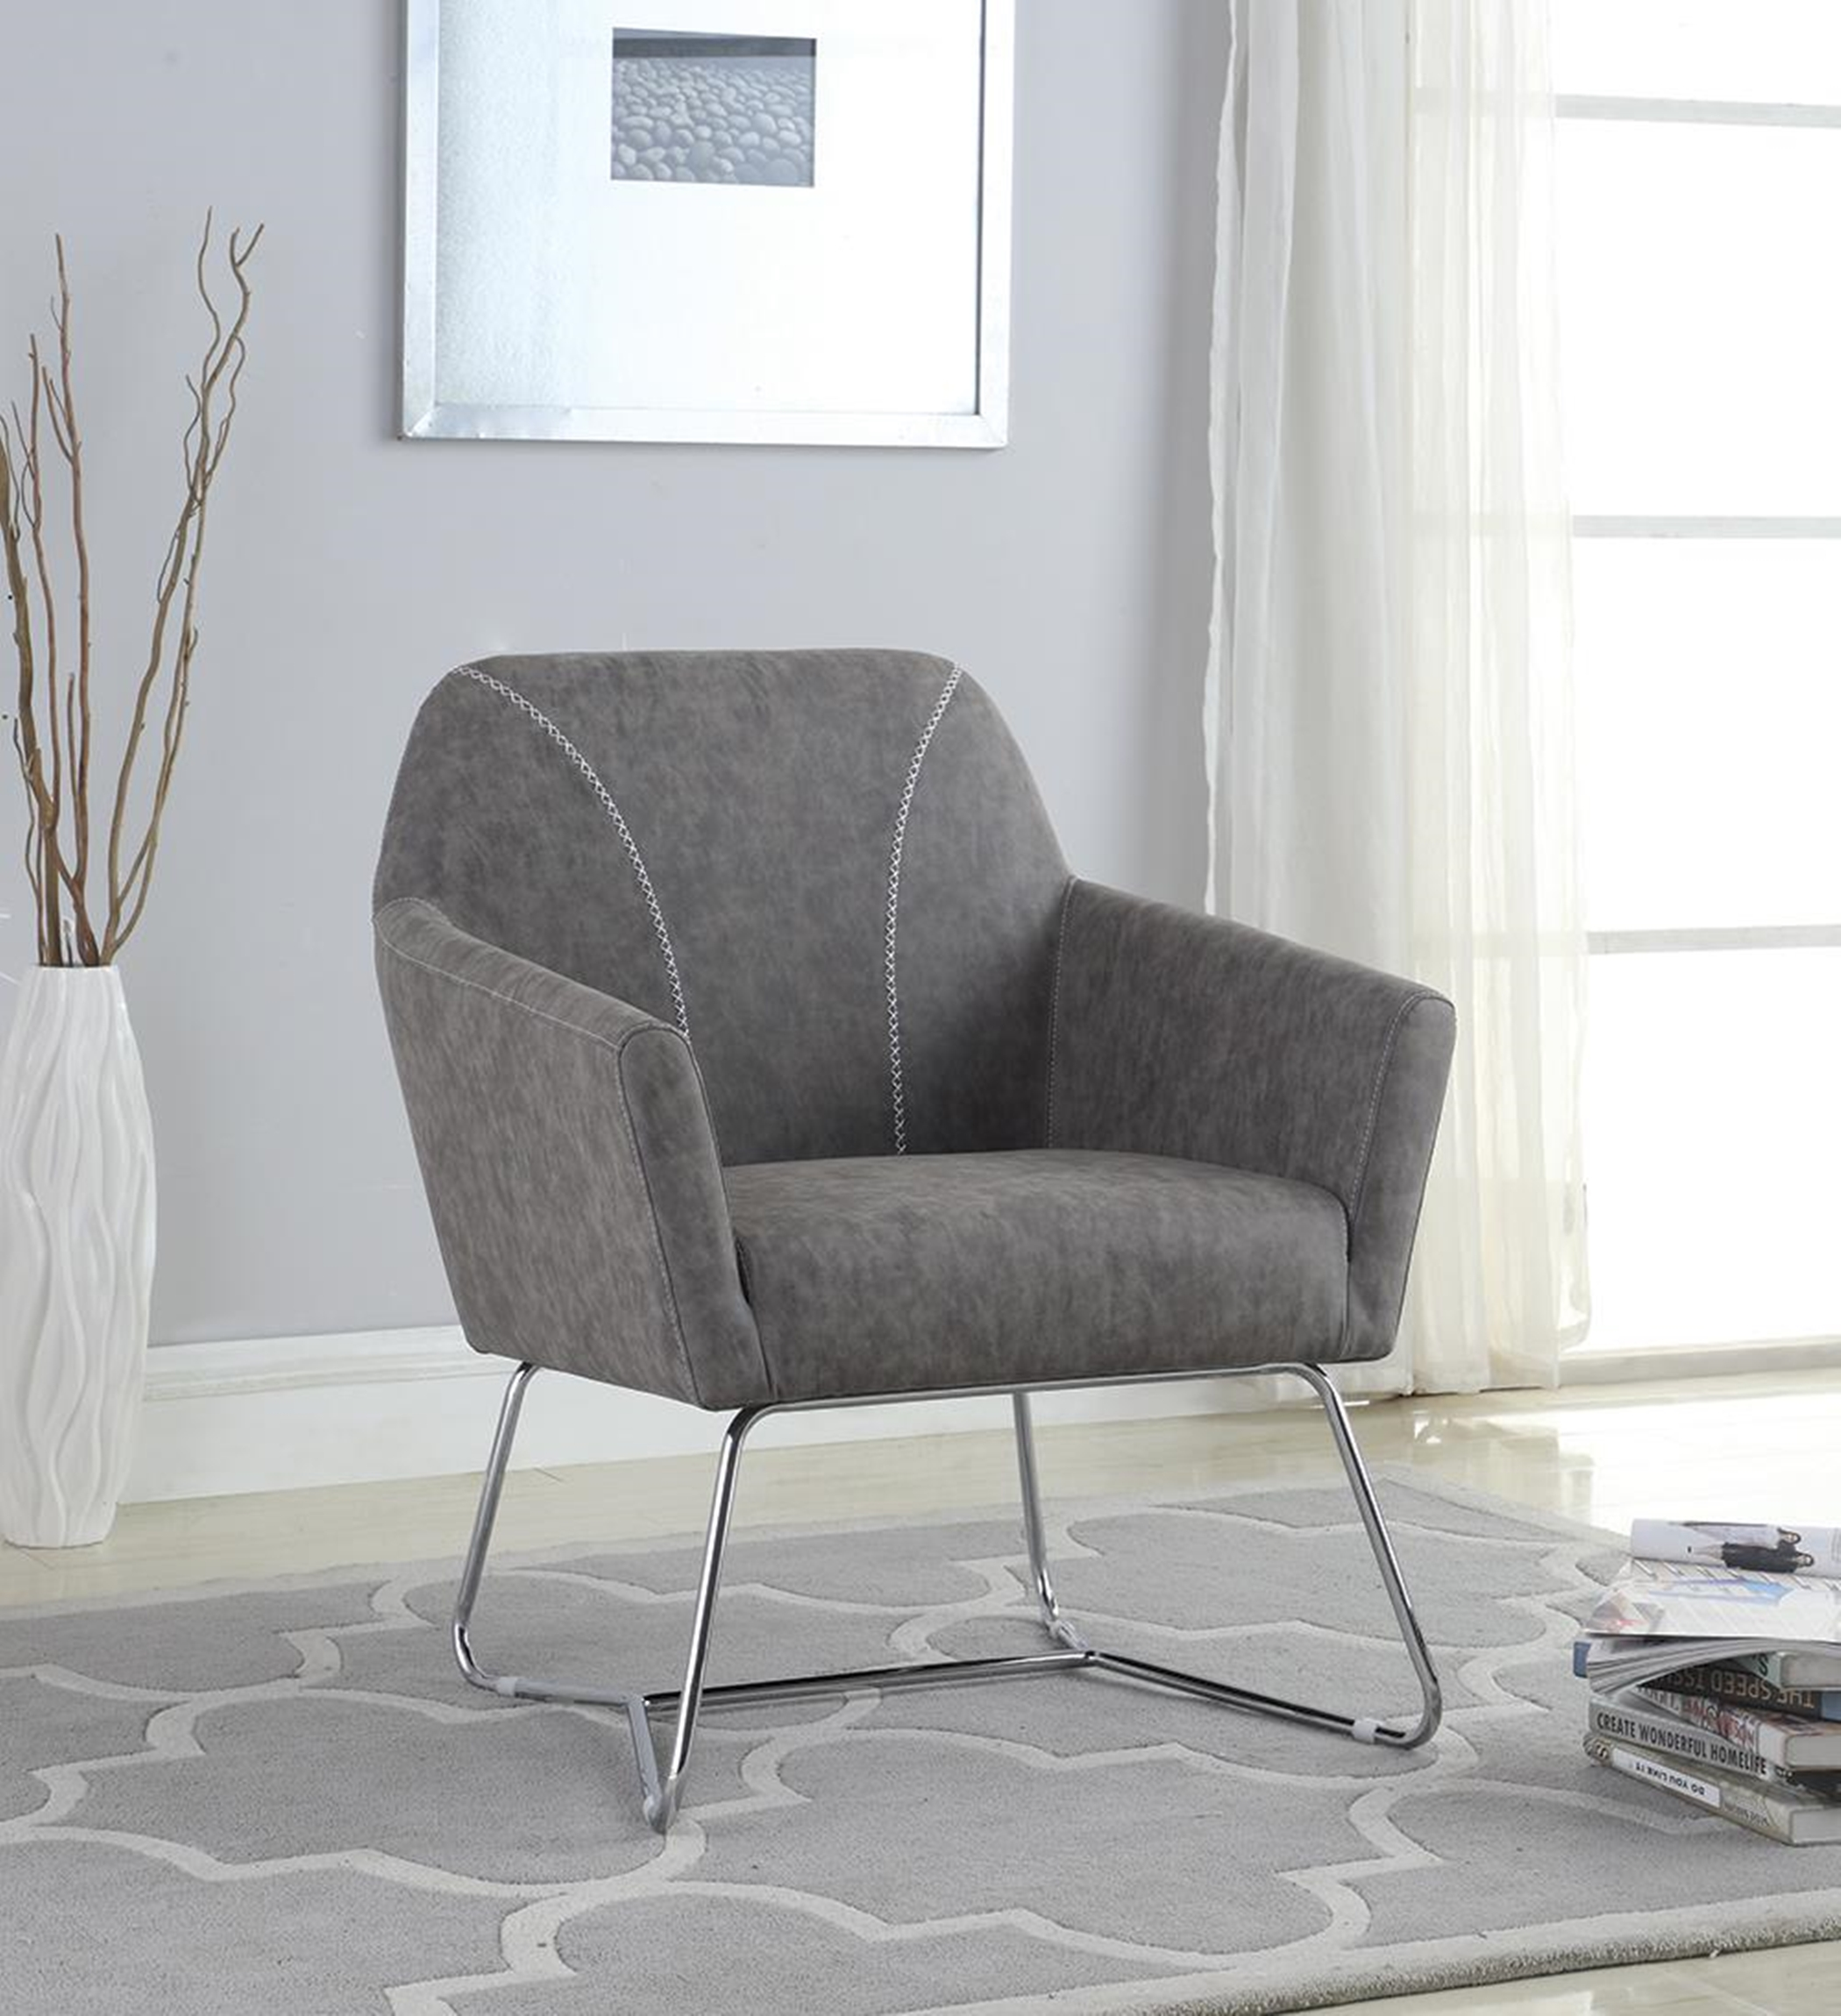 903850 - Accent Chair